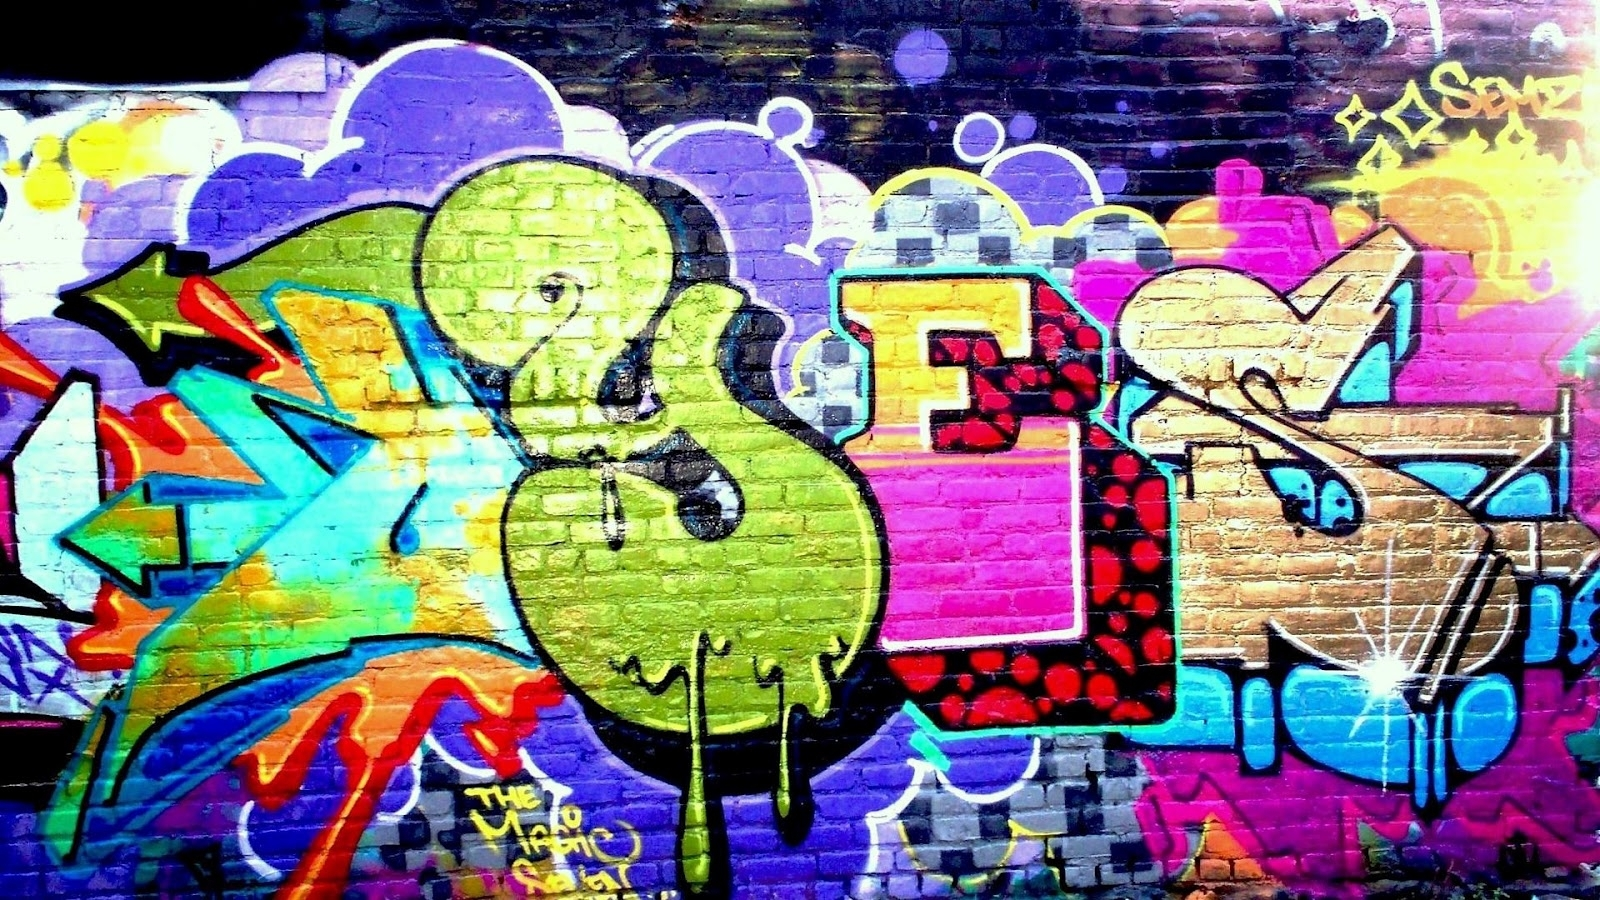 New Graffiti Wall Art – Wall Decoration Ideas Intended For Recent Graffiti Wall Art (Gallery 3 of 20)